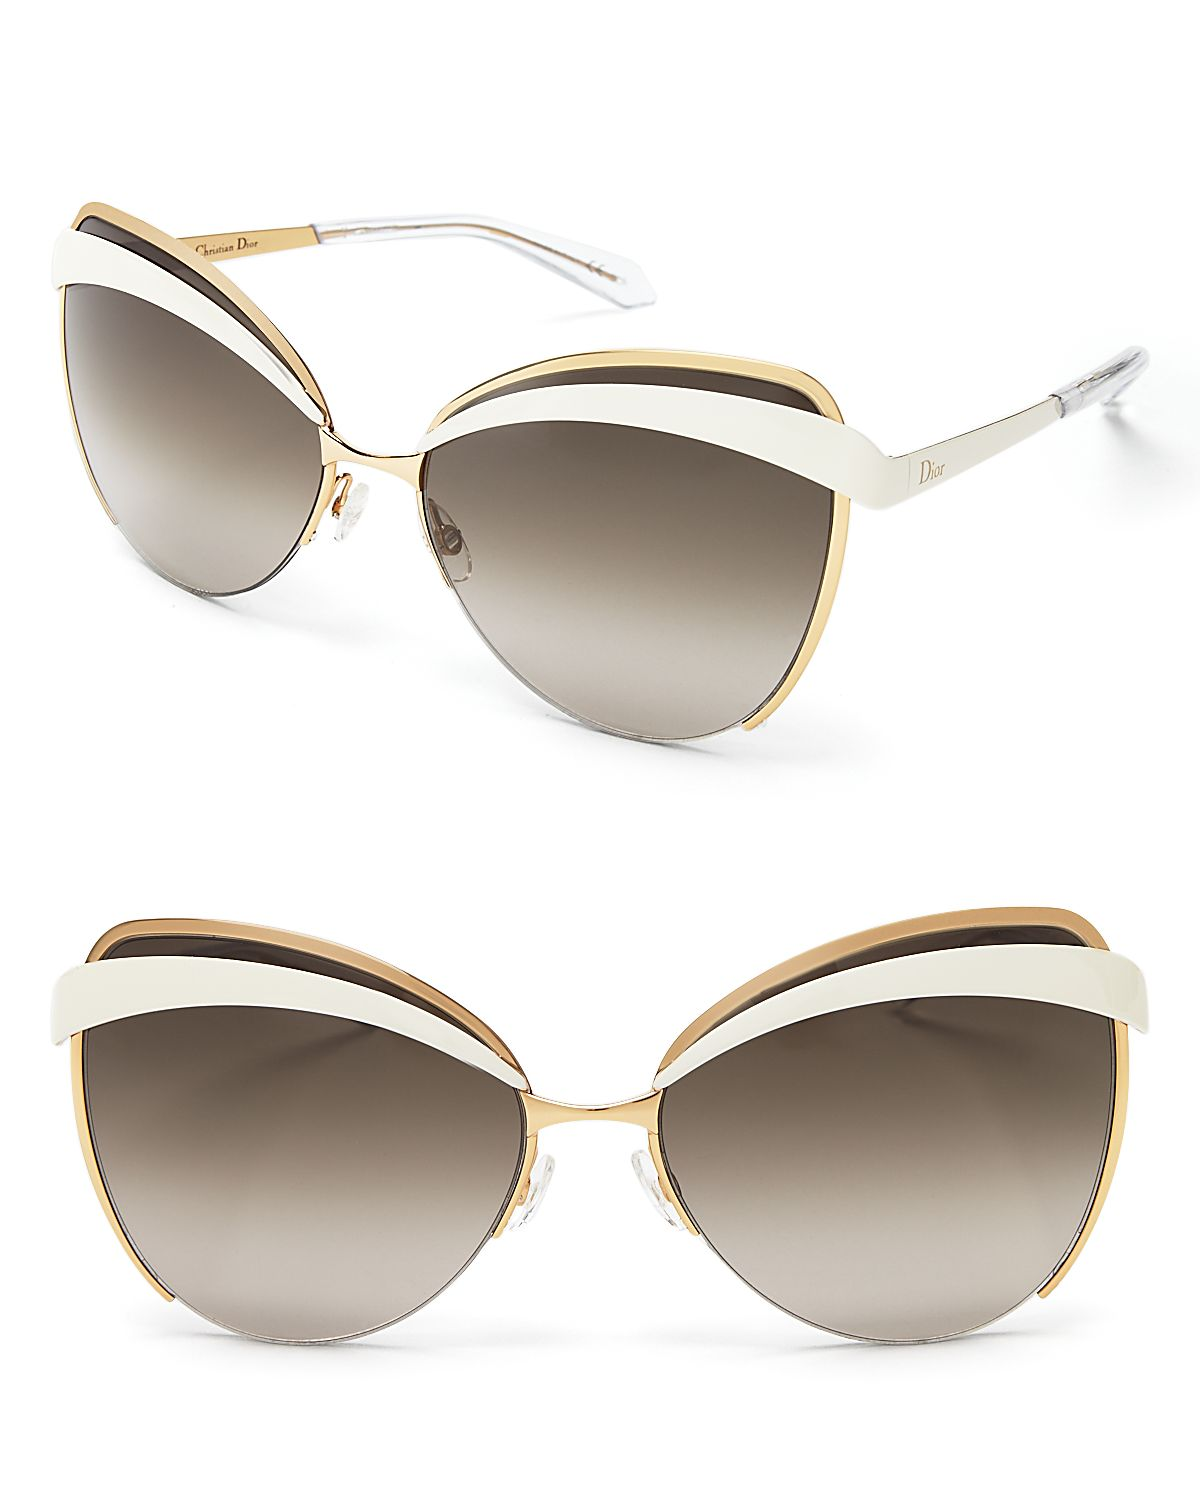 Oculos De Sol Fendi Paradeyes Degrade in addition Chanel Ch3282 501 moreover Wild Animals In Sunderban in addition Lb as well Herrenbrillen. on ray ban cat